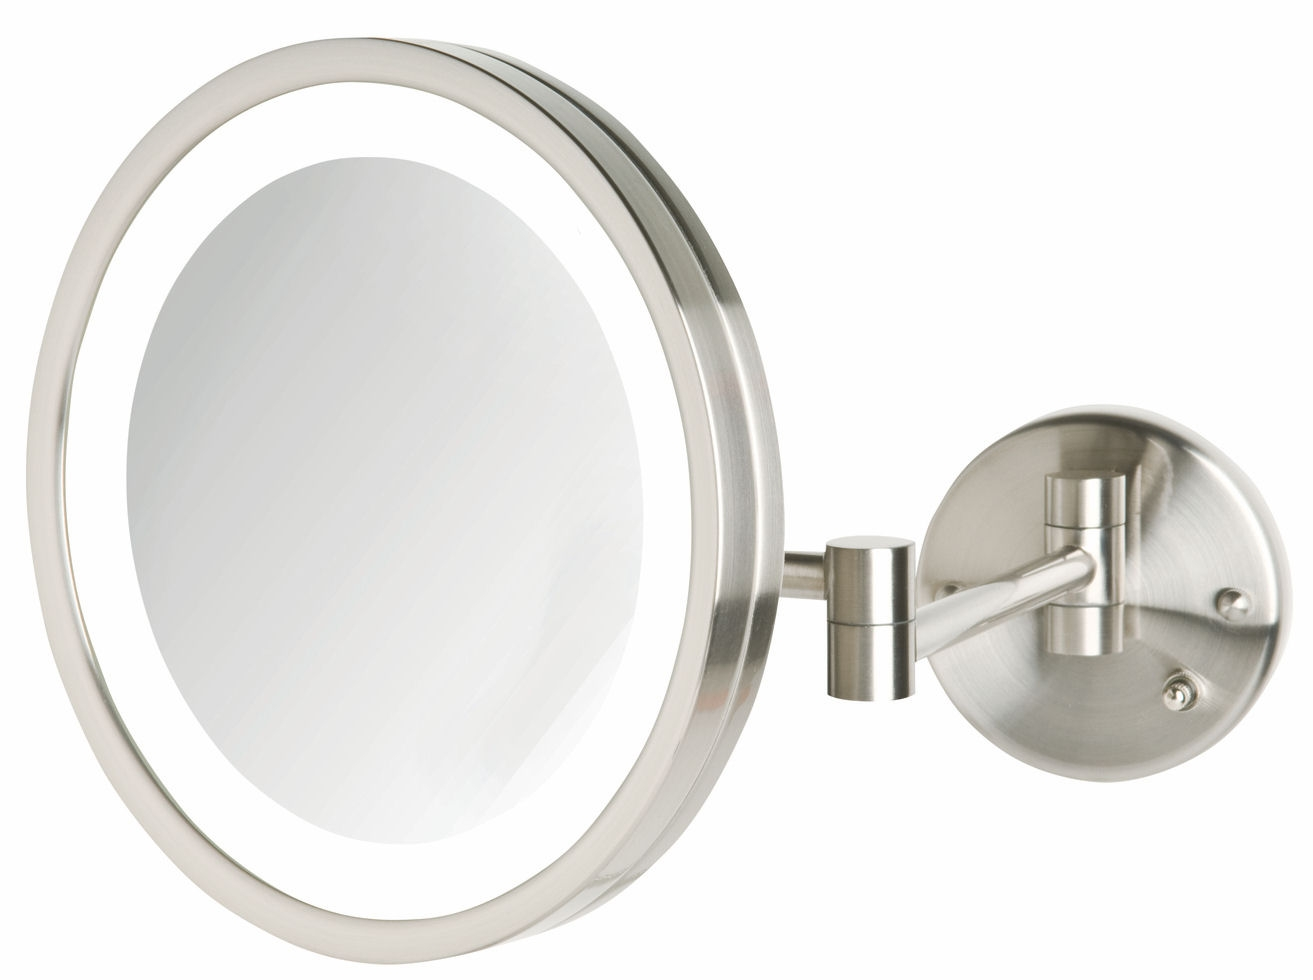 Permalink to Wall Mounted Lighted Mirror 10x